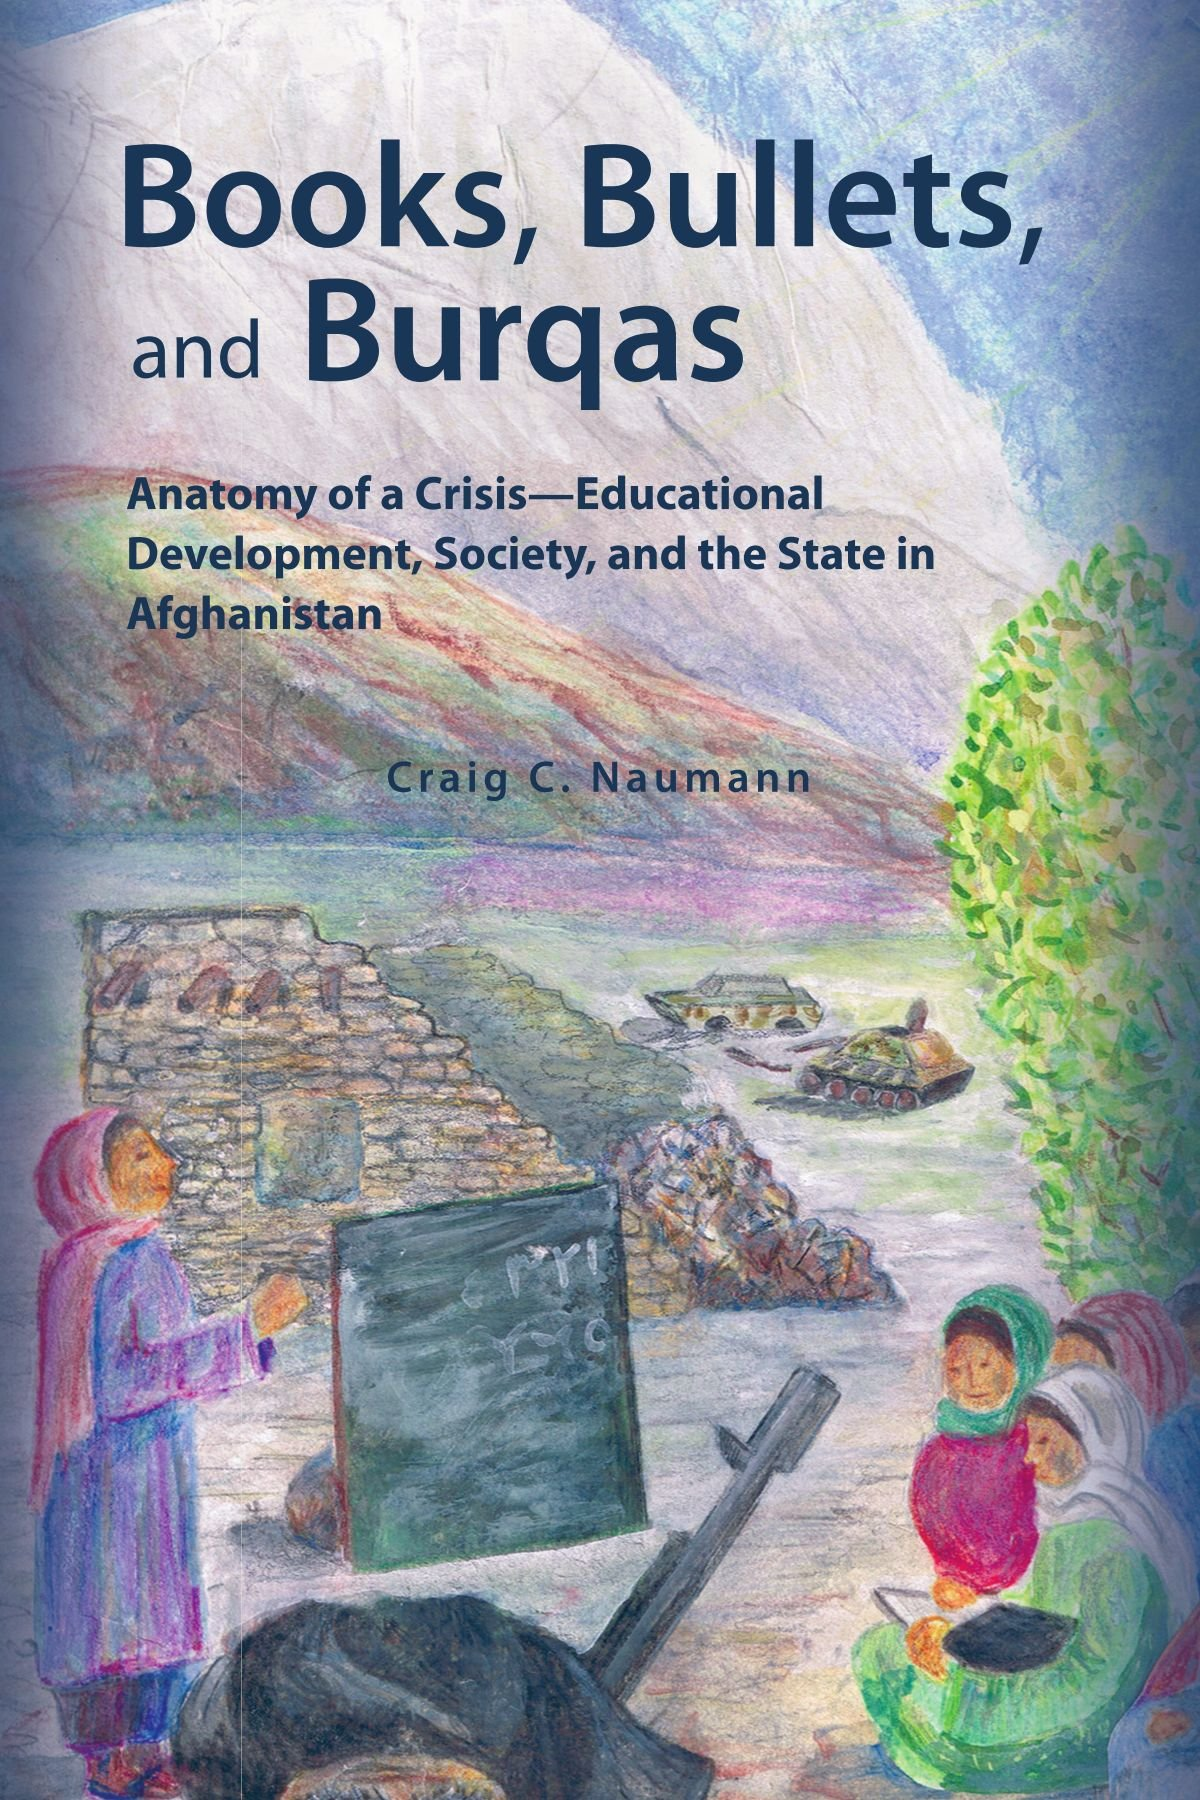 Books, Bullets, and Burqas: Anatomy of a Crisis-Educational ...